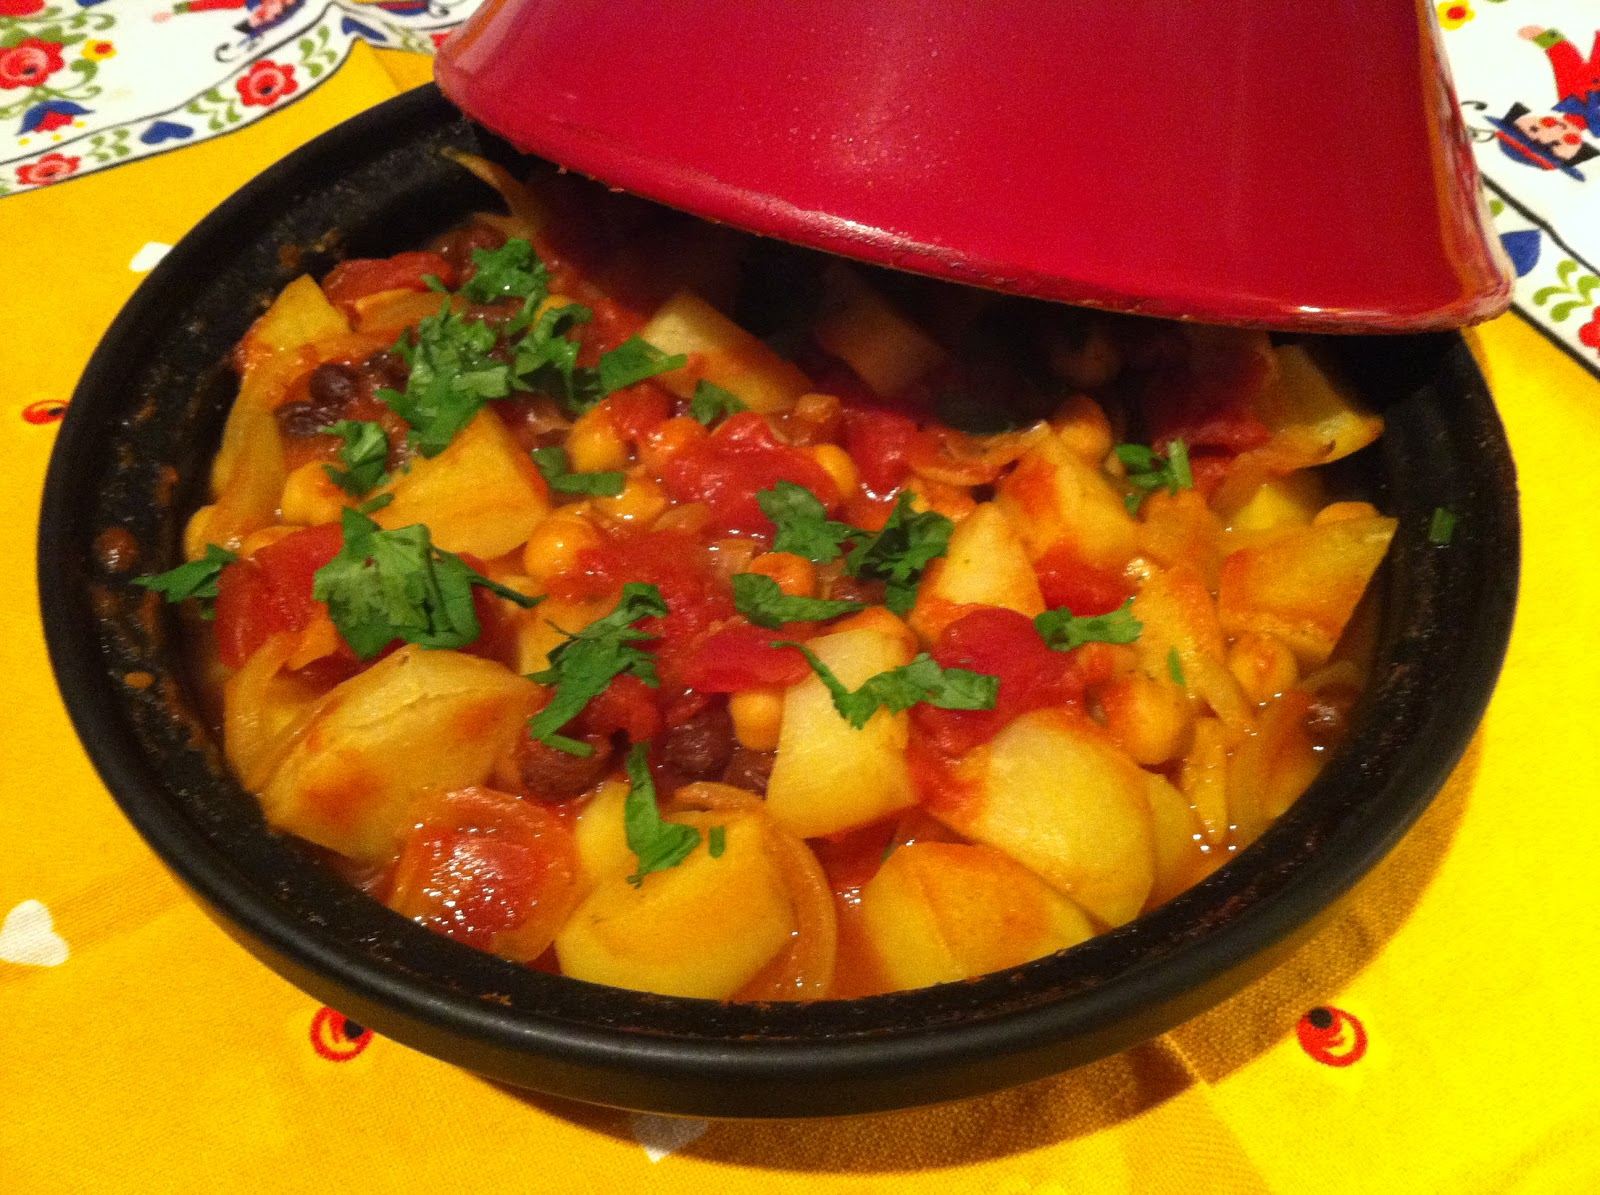 ... Kitchen: of vegan creations: Moroccan Vegetable Tagine with couscous